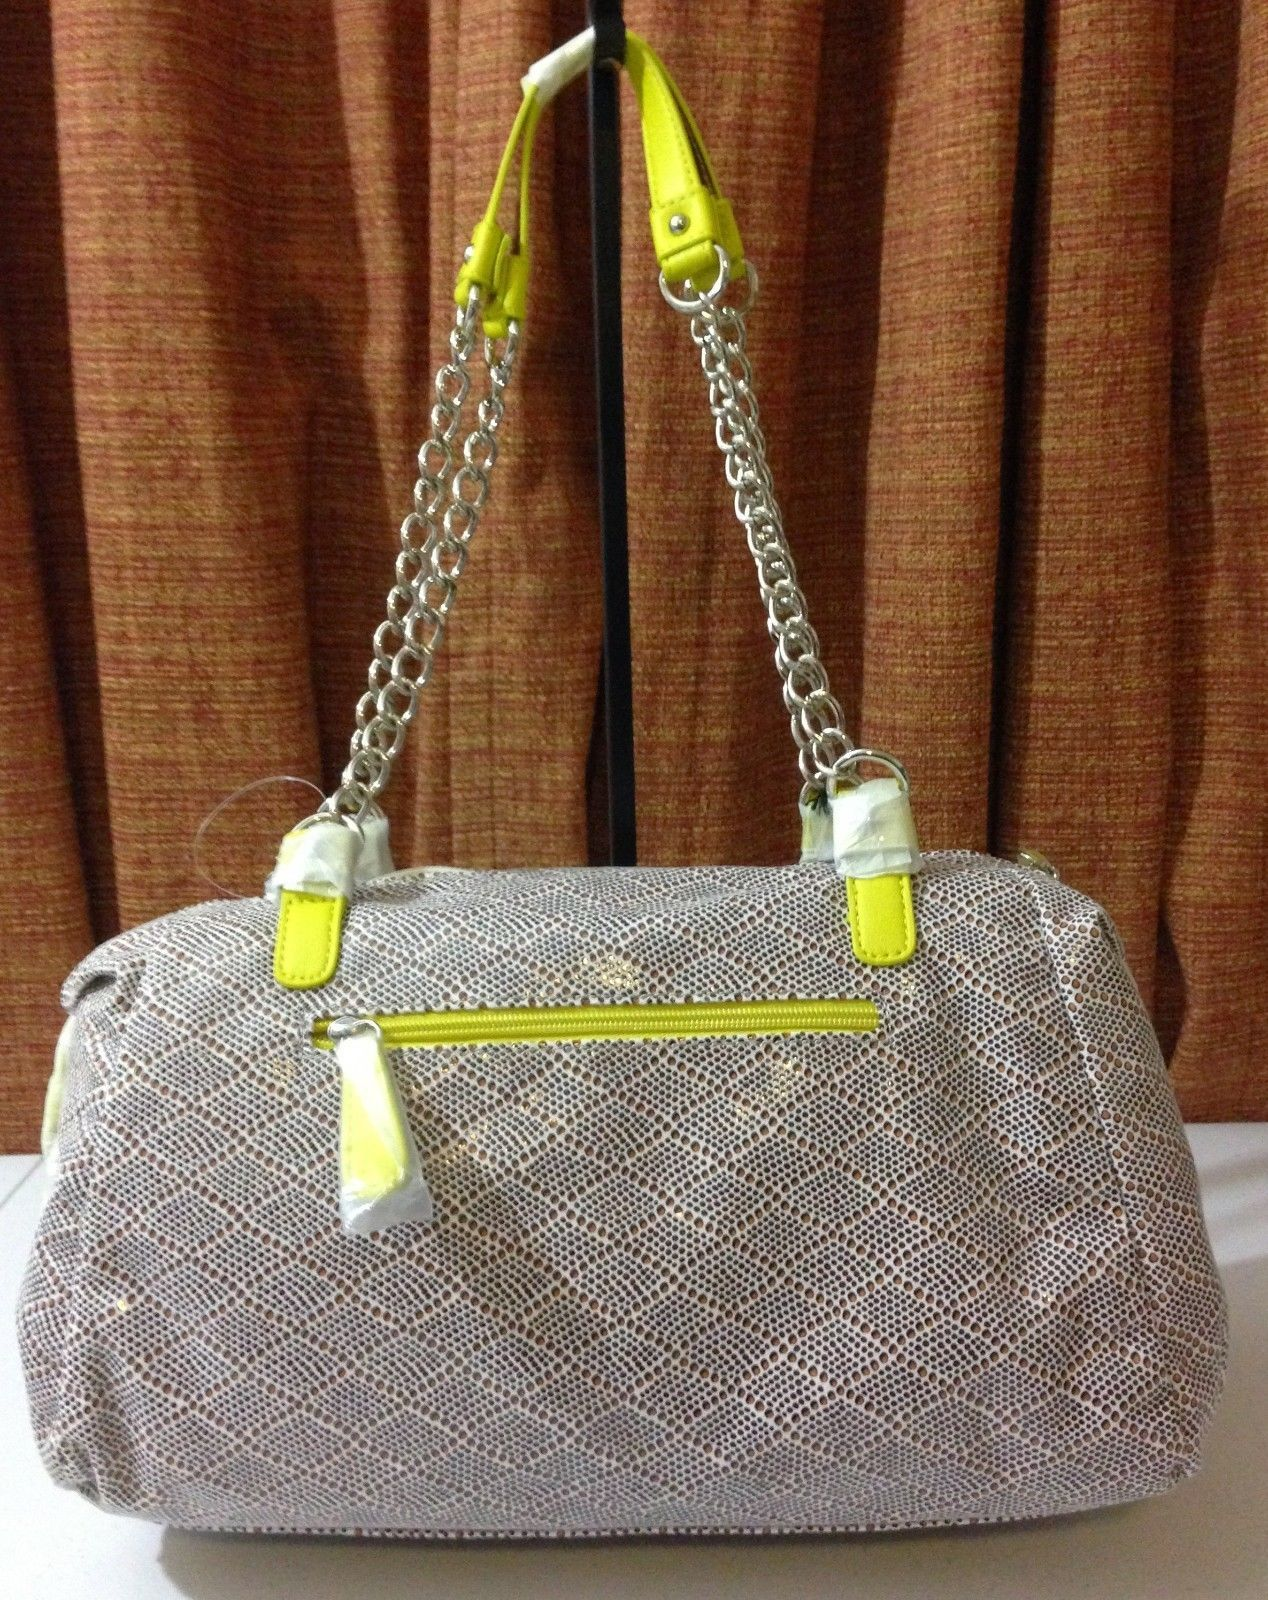 NWT Kathy Van Zeeland Love Letter Satchel Diamond Dot White $99